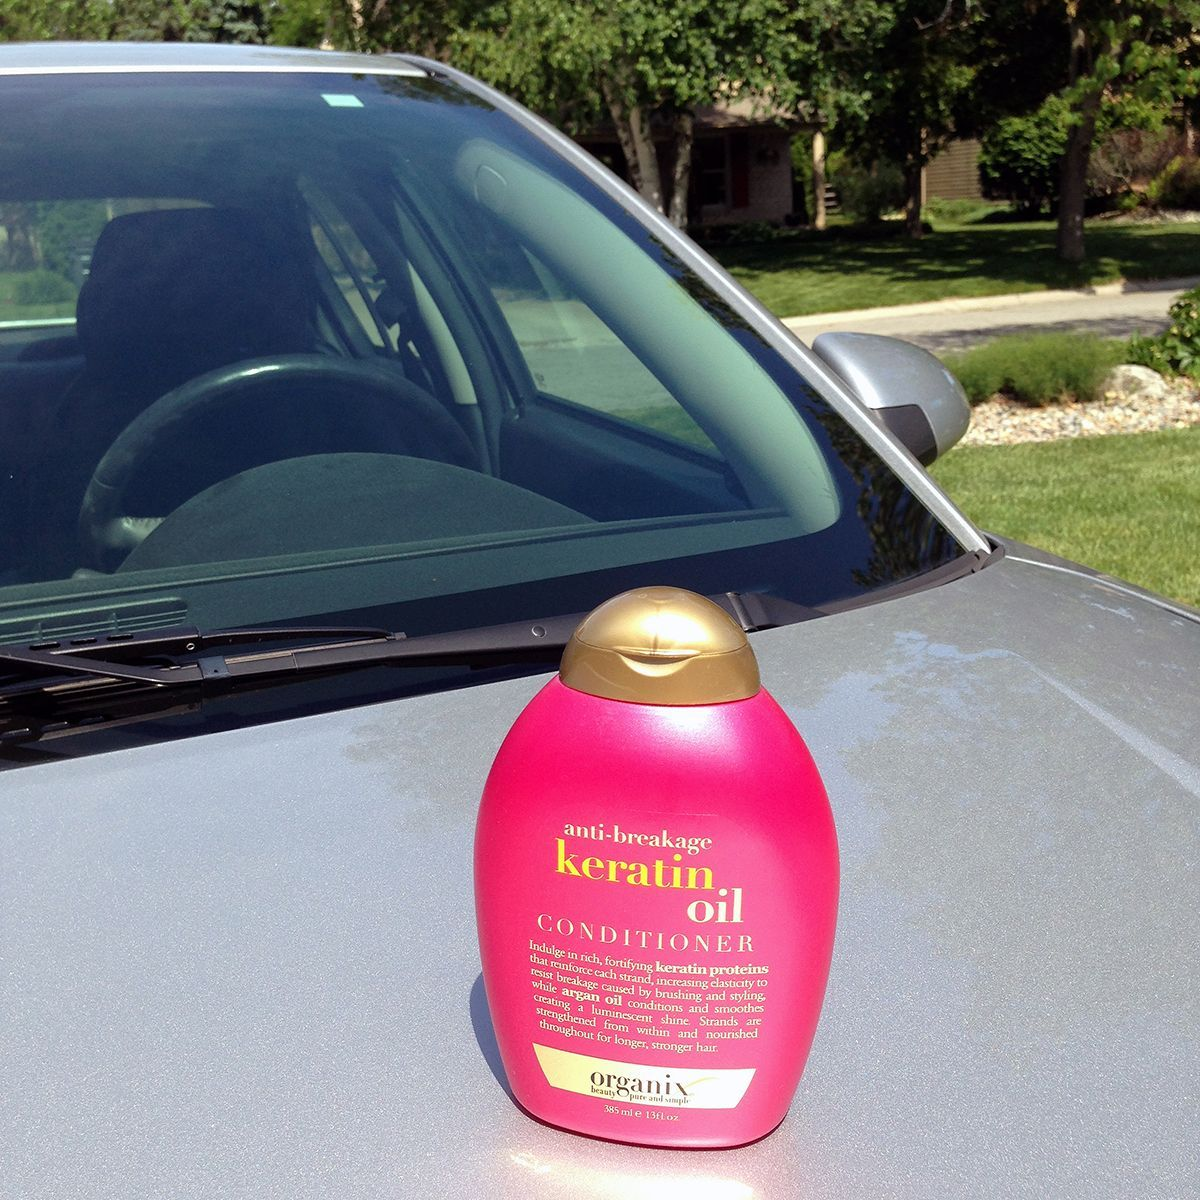 Conditioner on car